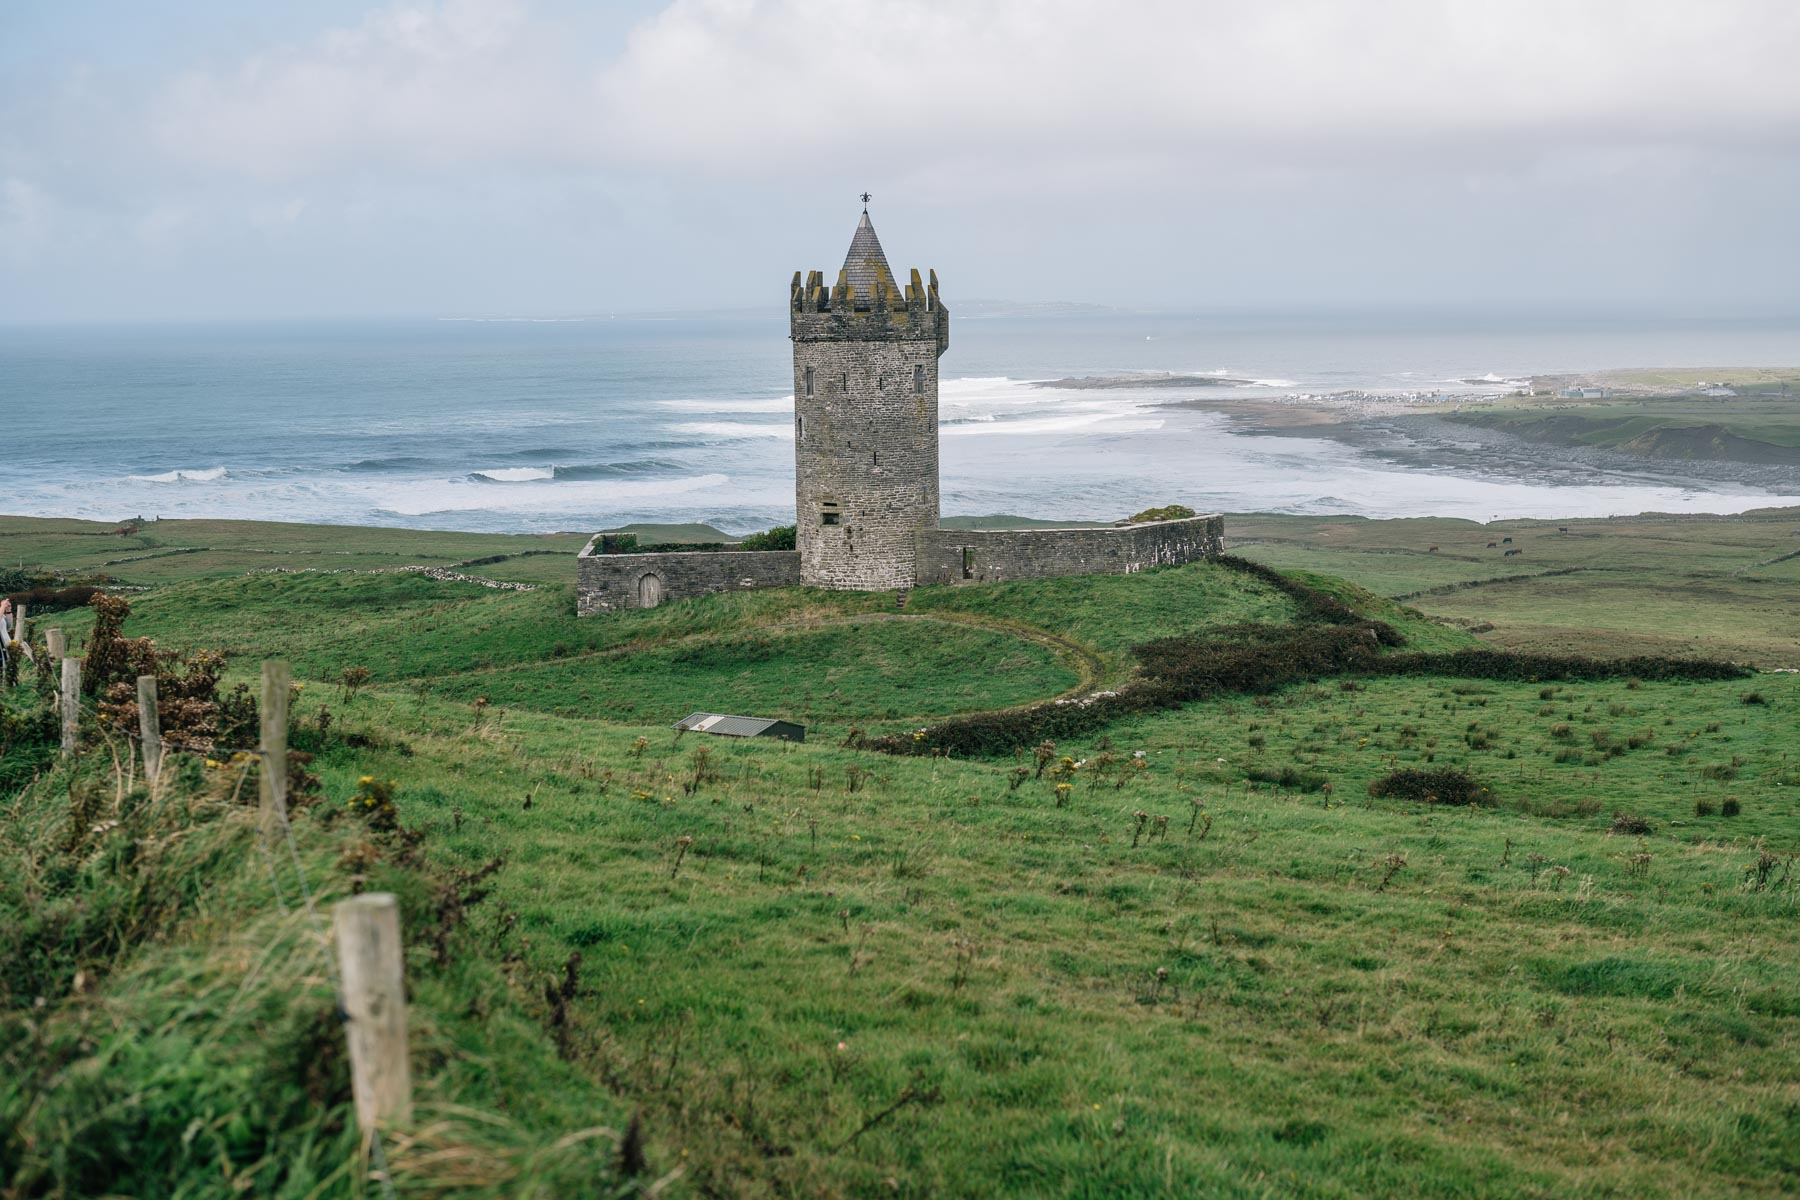 Doonagore Castle in Doolin on the Wild Atlantic way road trip in Ireland